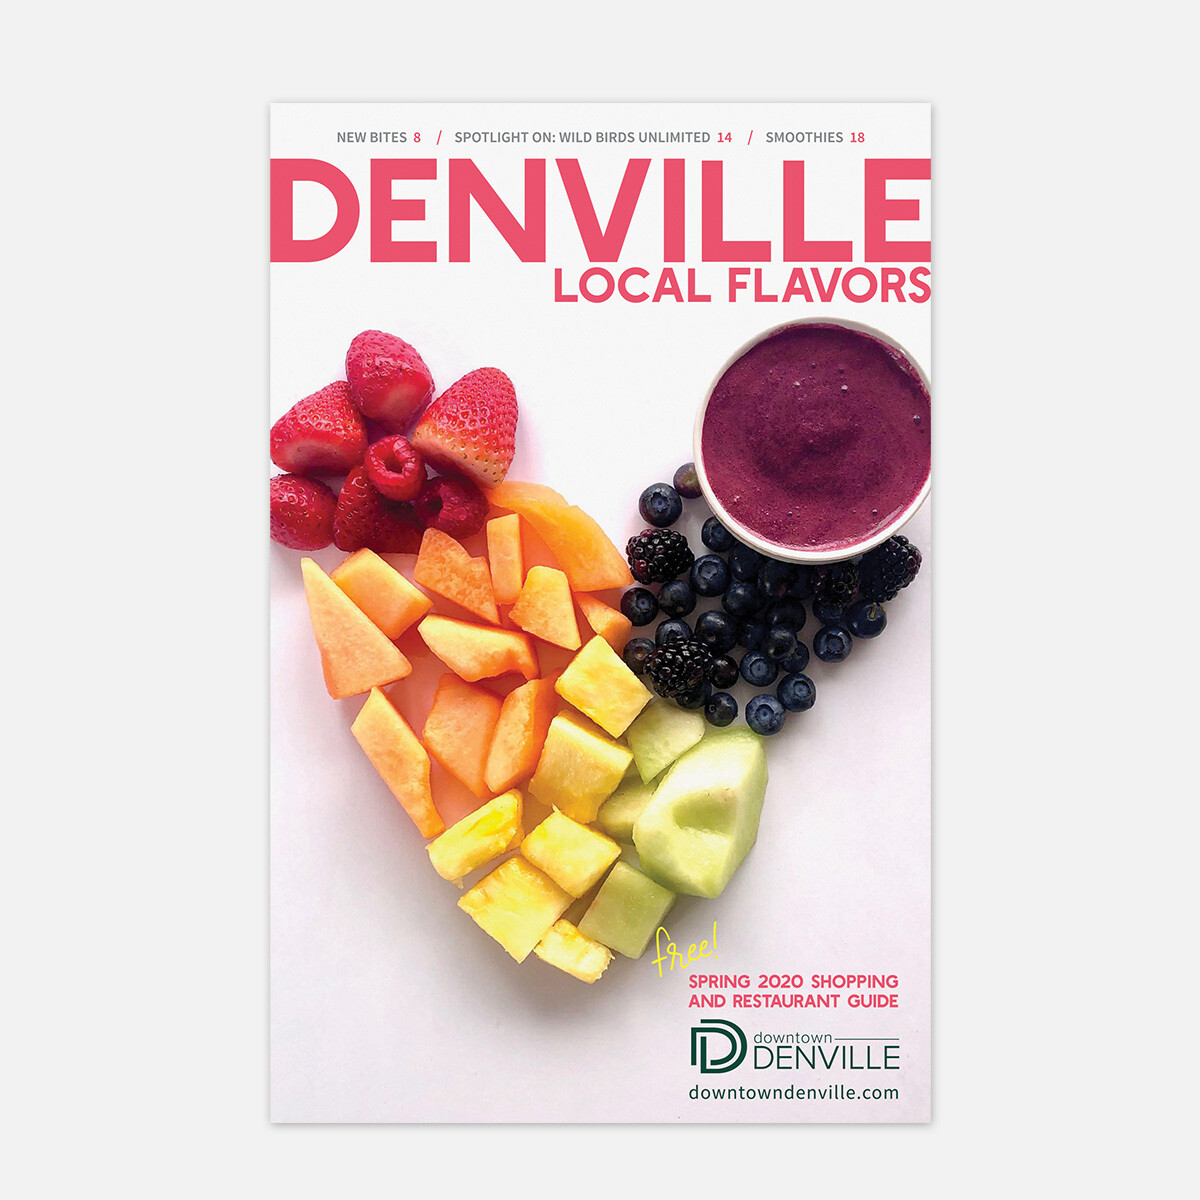 BACK ISSUE: Spring 2020 Denville Local Flavors Guide